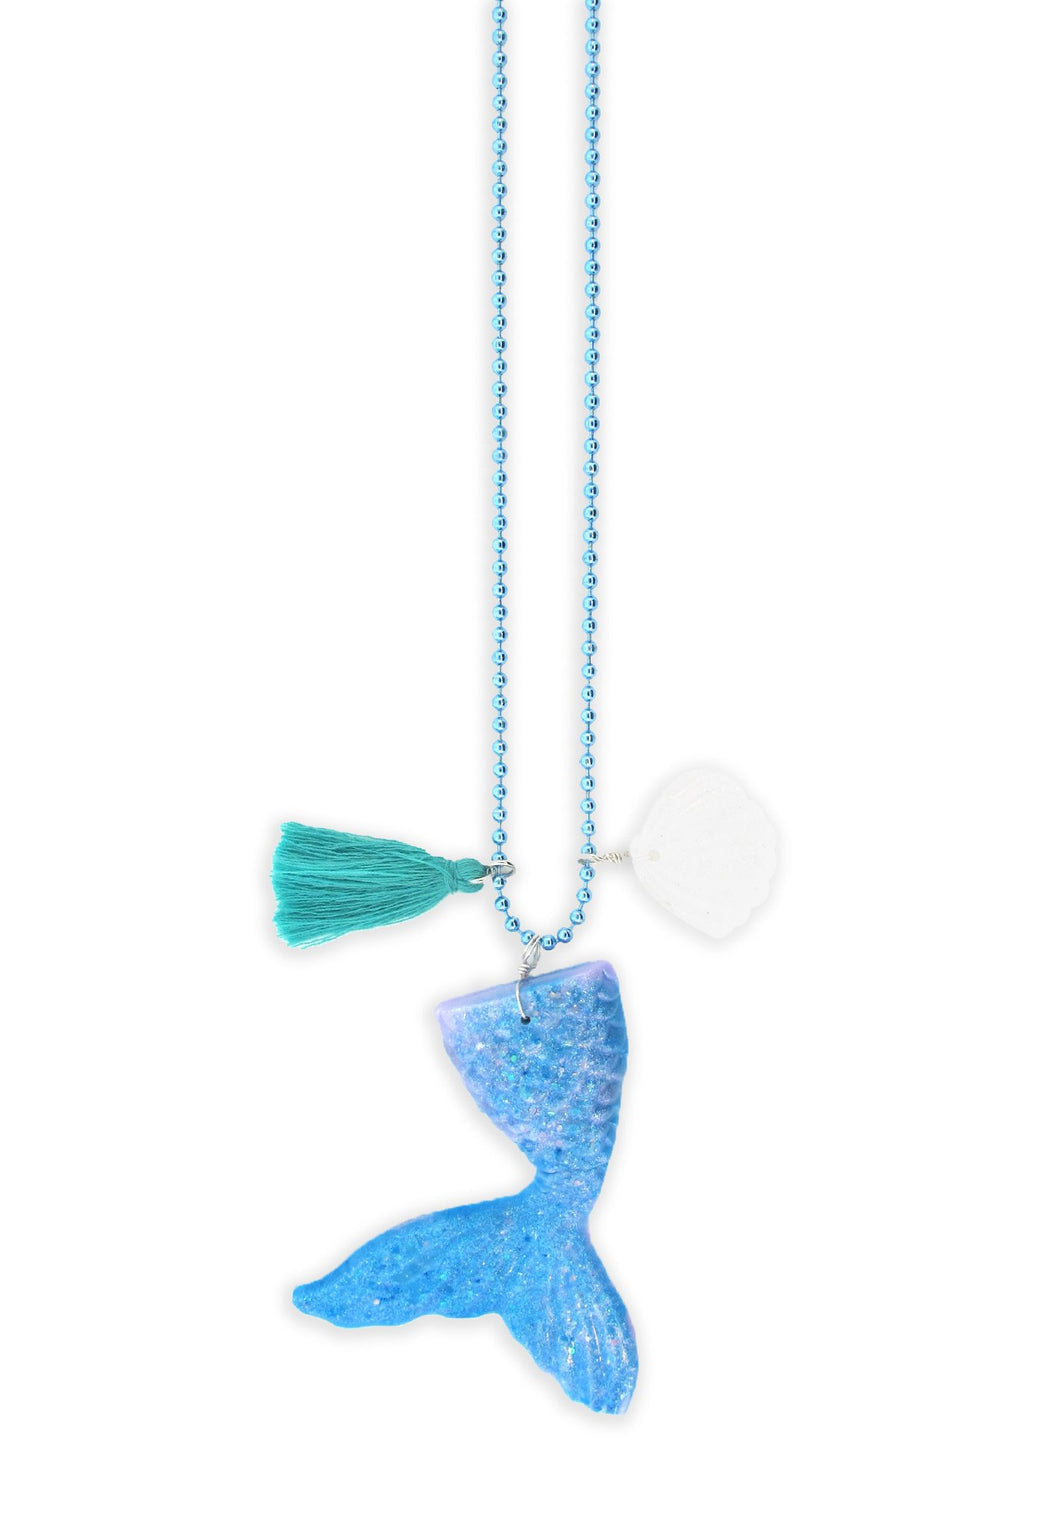 Mermaid Tail Necklace + Postcard